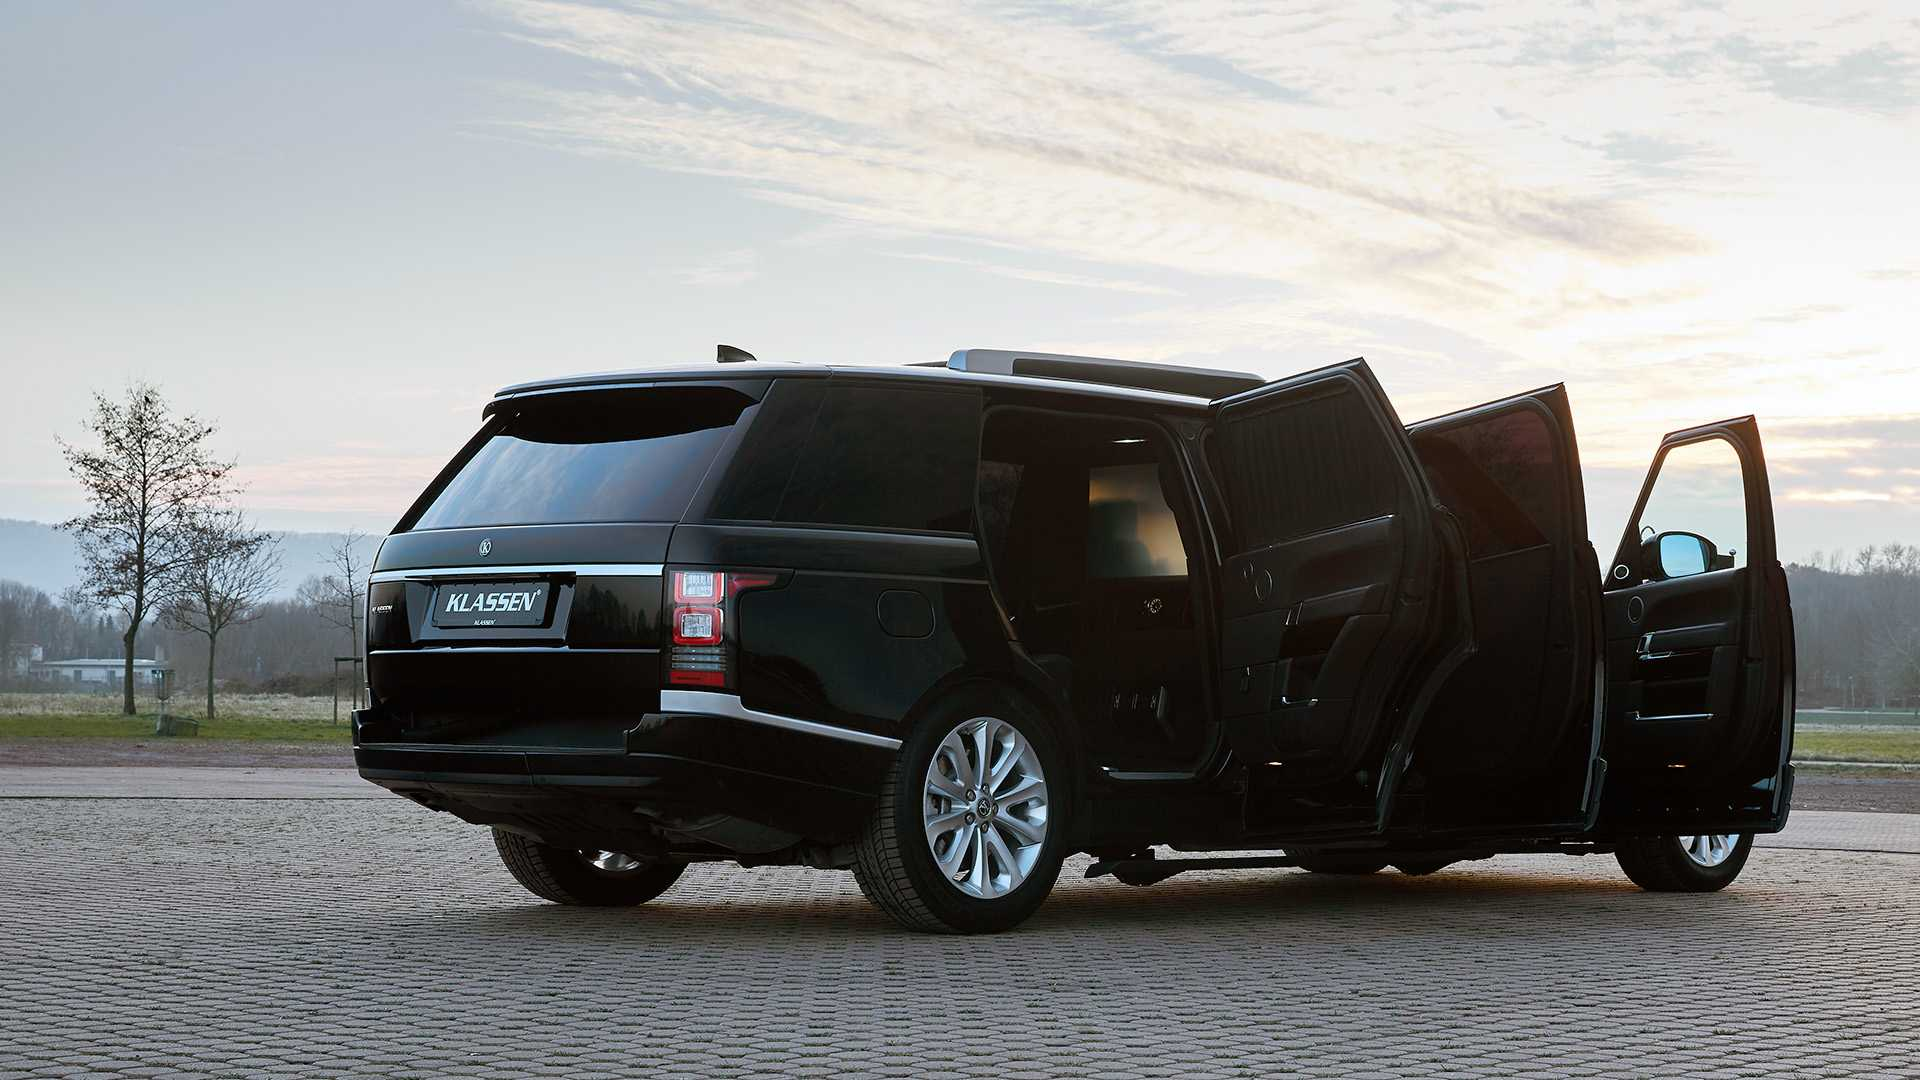 klassen-stretched-land-rover-range-rover-autobiography-5